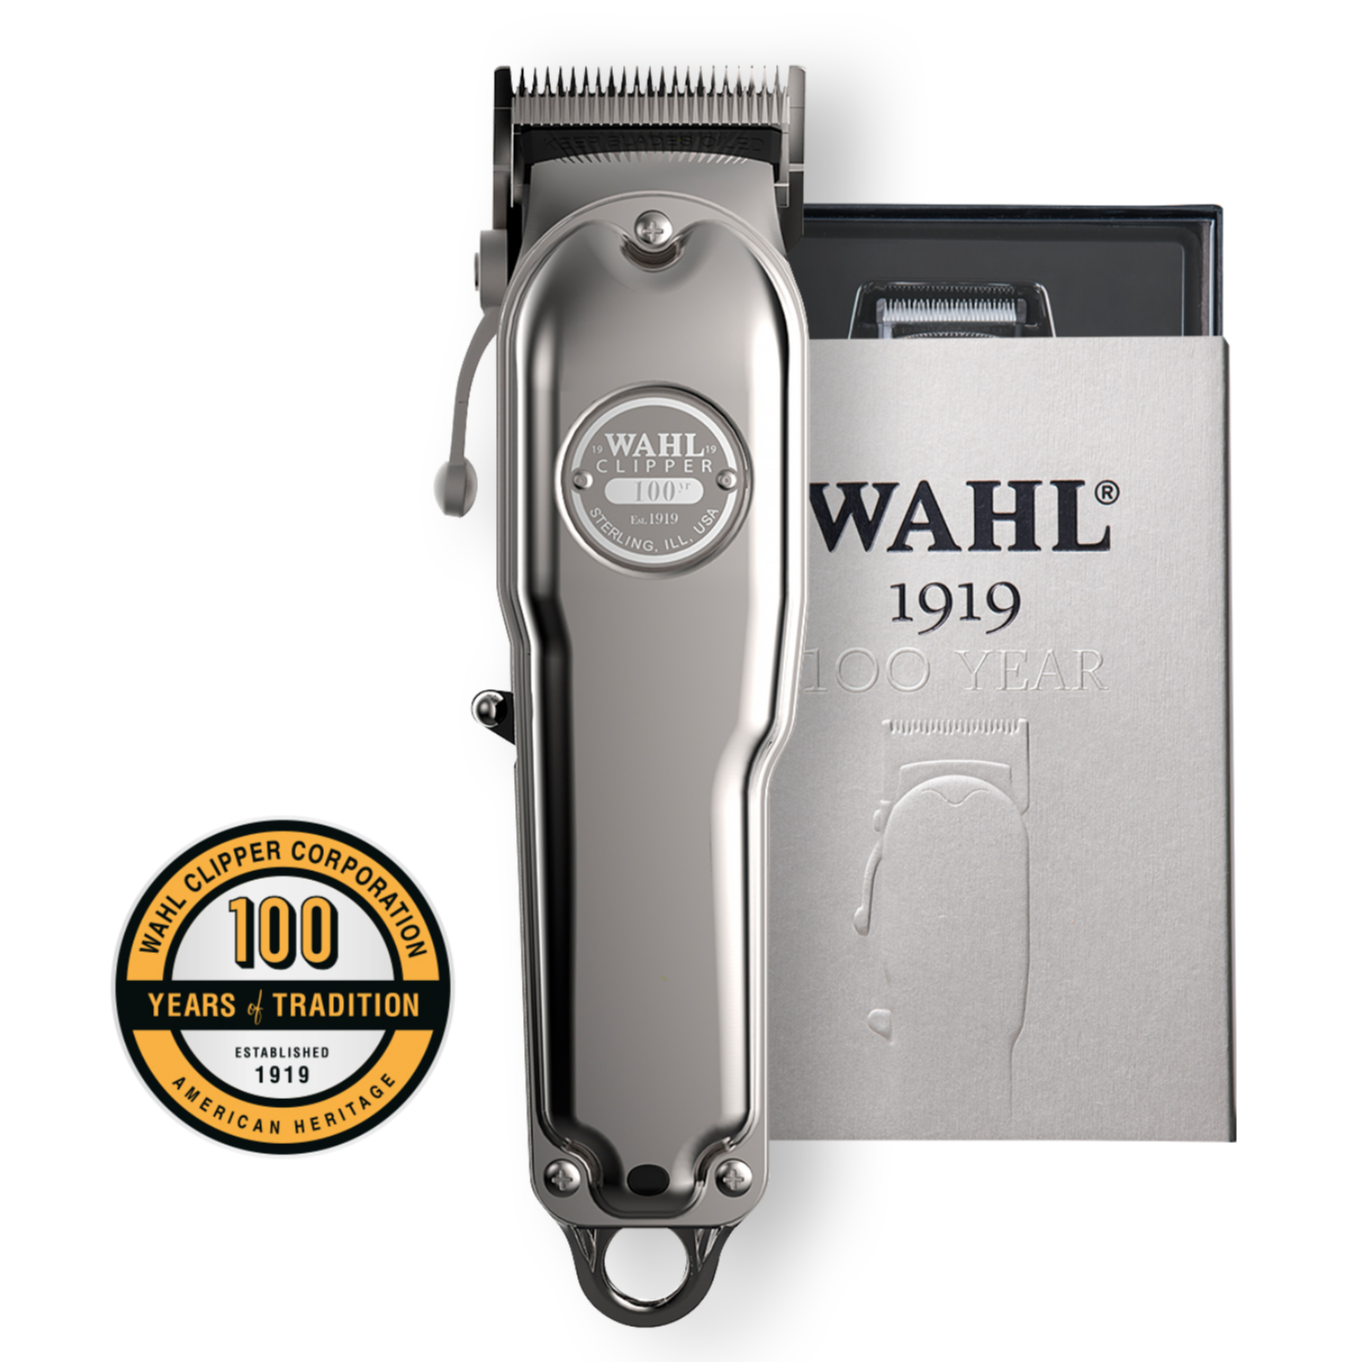 Wahl 1919 Pro 100 Year Anniversary Limited Edition Cordles Hair Clipper Trimmer, Hair Cut Kit, Hair Cutting Machine, Shaver